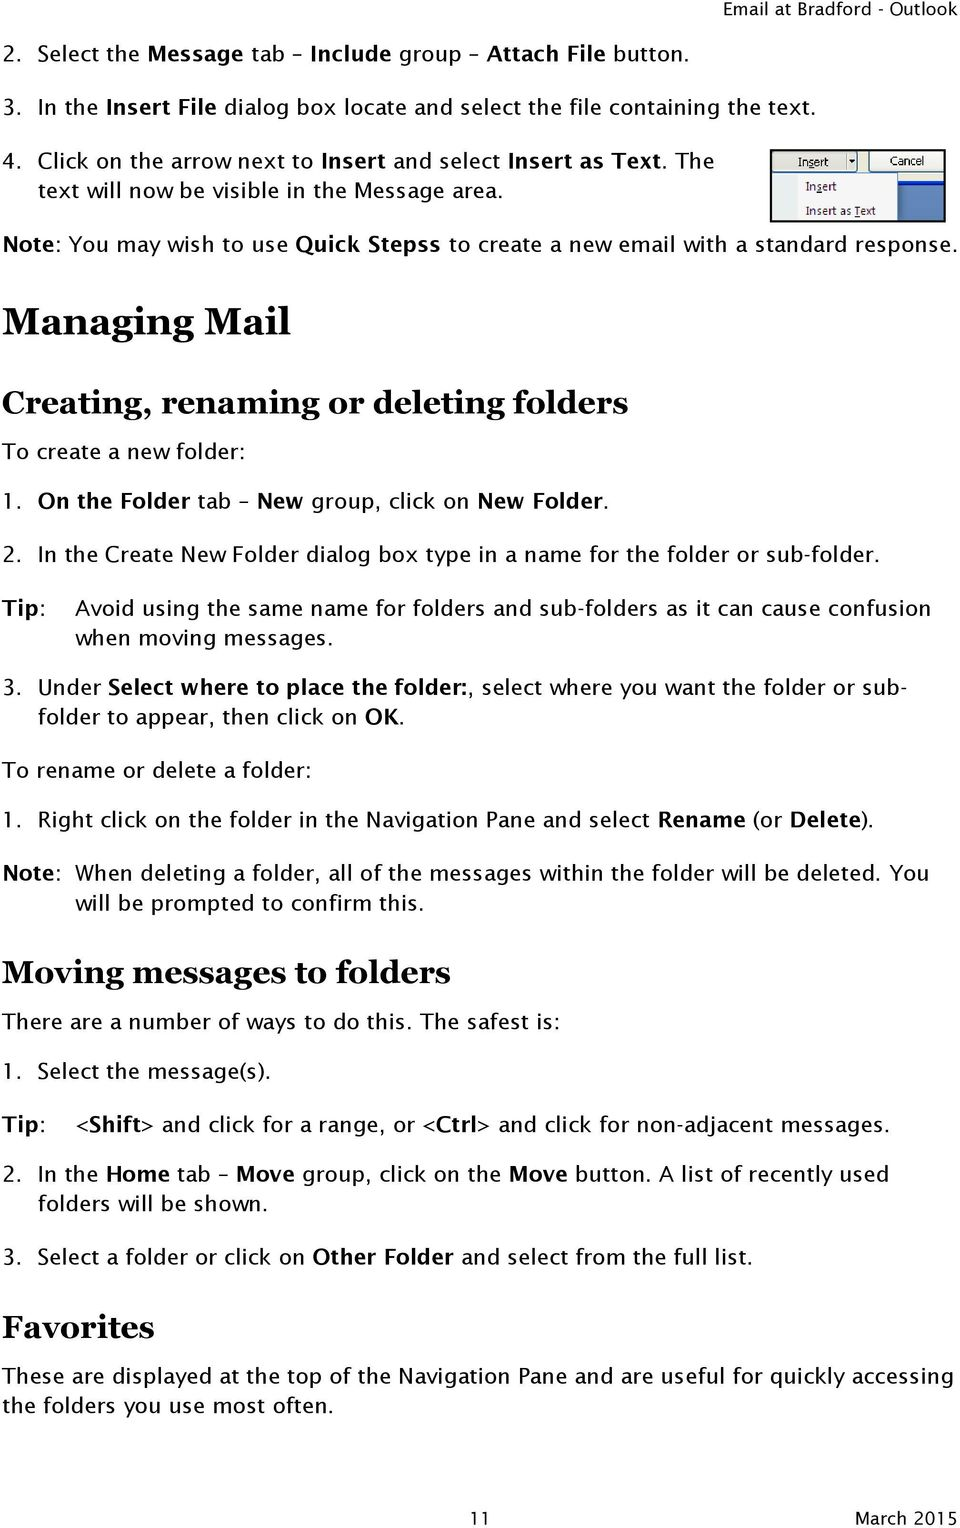 Managing Mail Creating, renaming or deleting folders To create a new folder: 1. On the Folder tab New group, click on New Folder. 2.